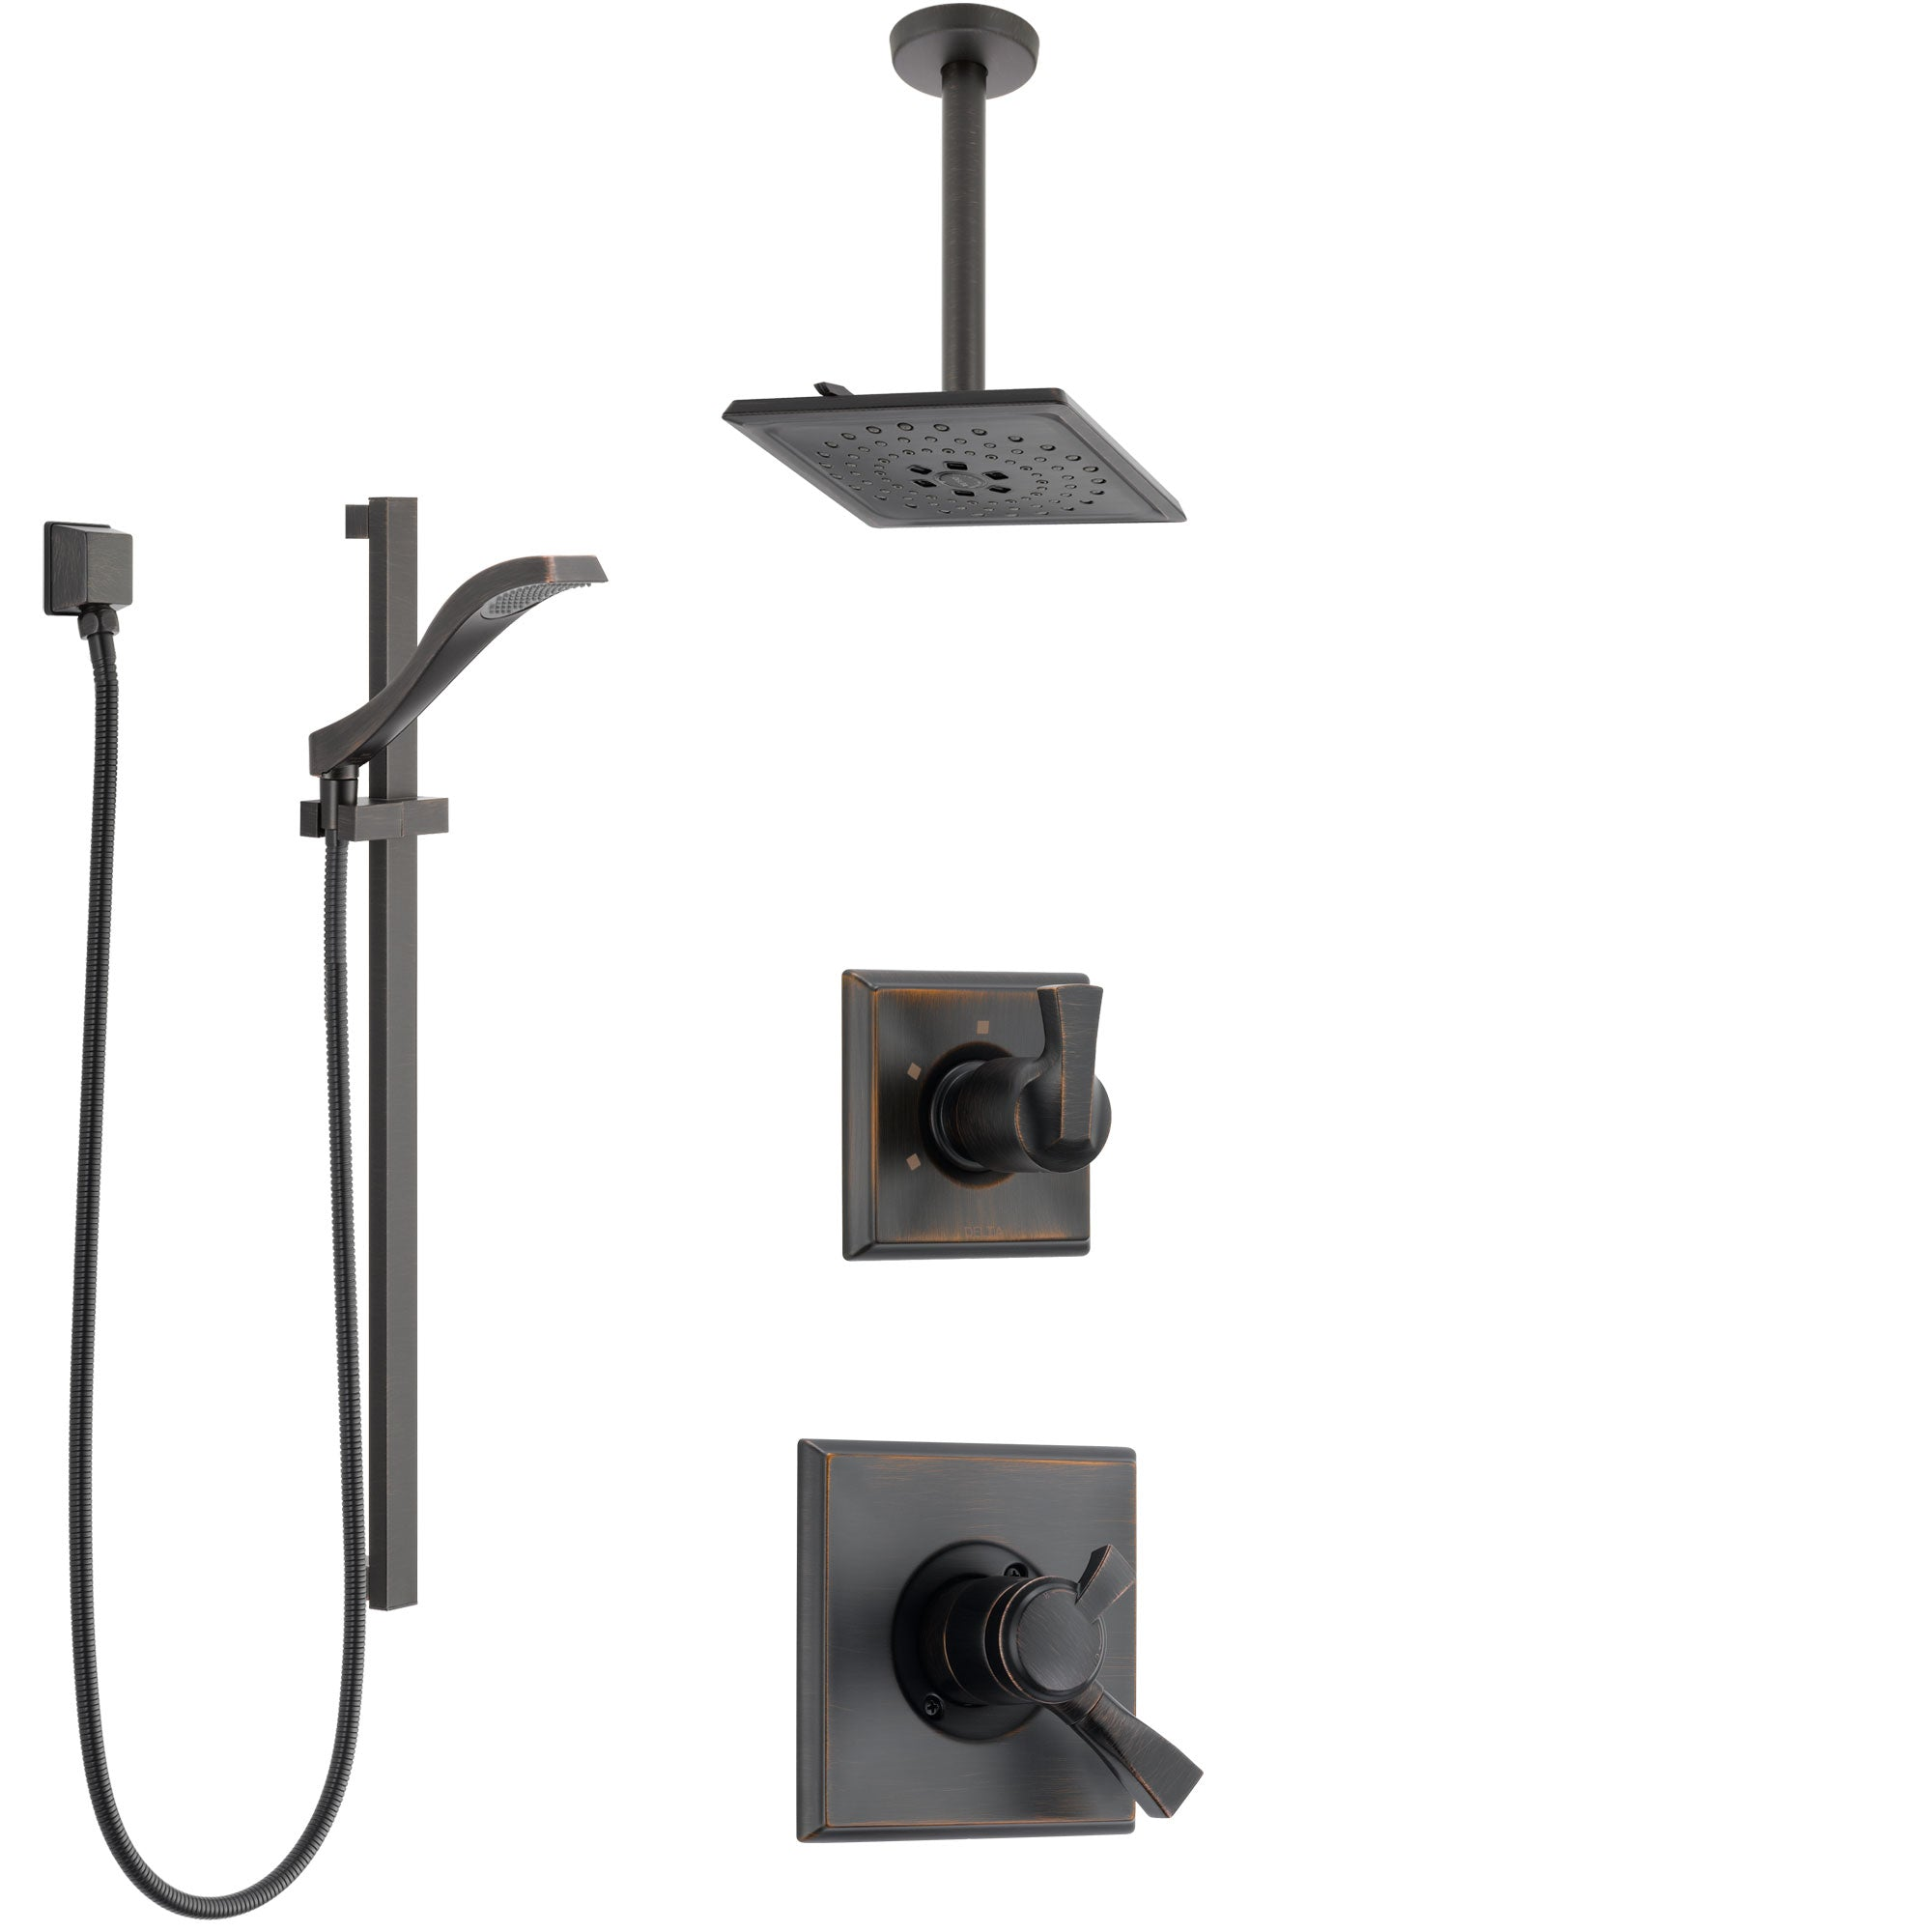 Delta Dryden Venetian Bronze Shower System with Dual Control Handle, Diverter, Ceiling Mount Showerhead, and Hand Shower with Slidebar SS1751RB5